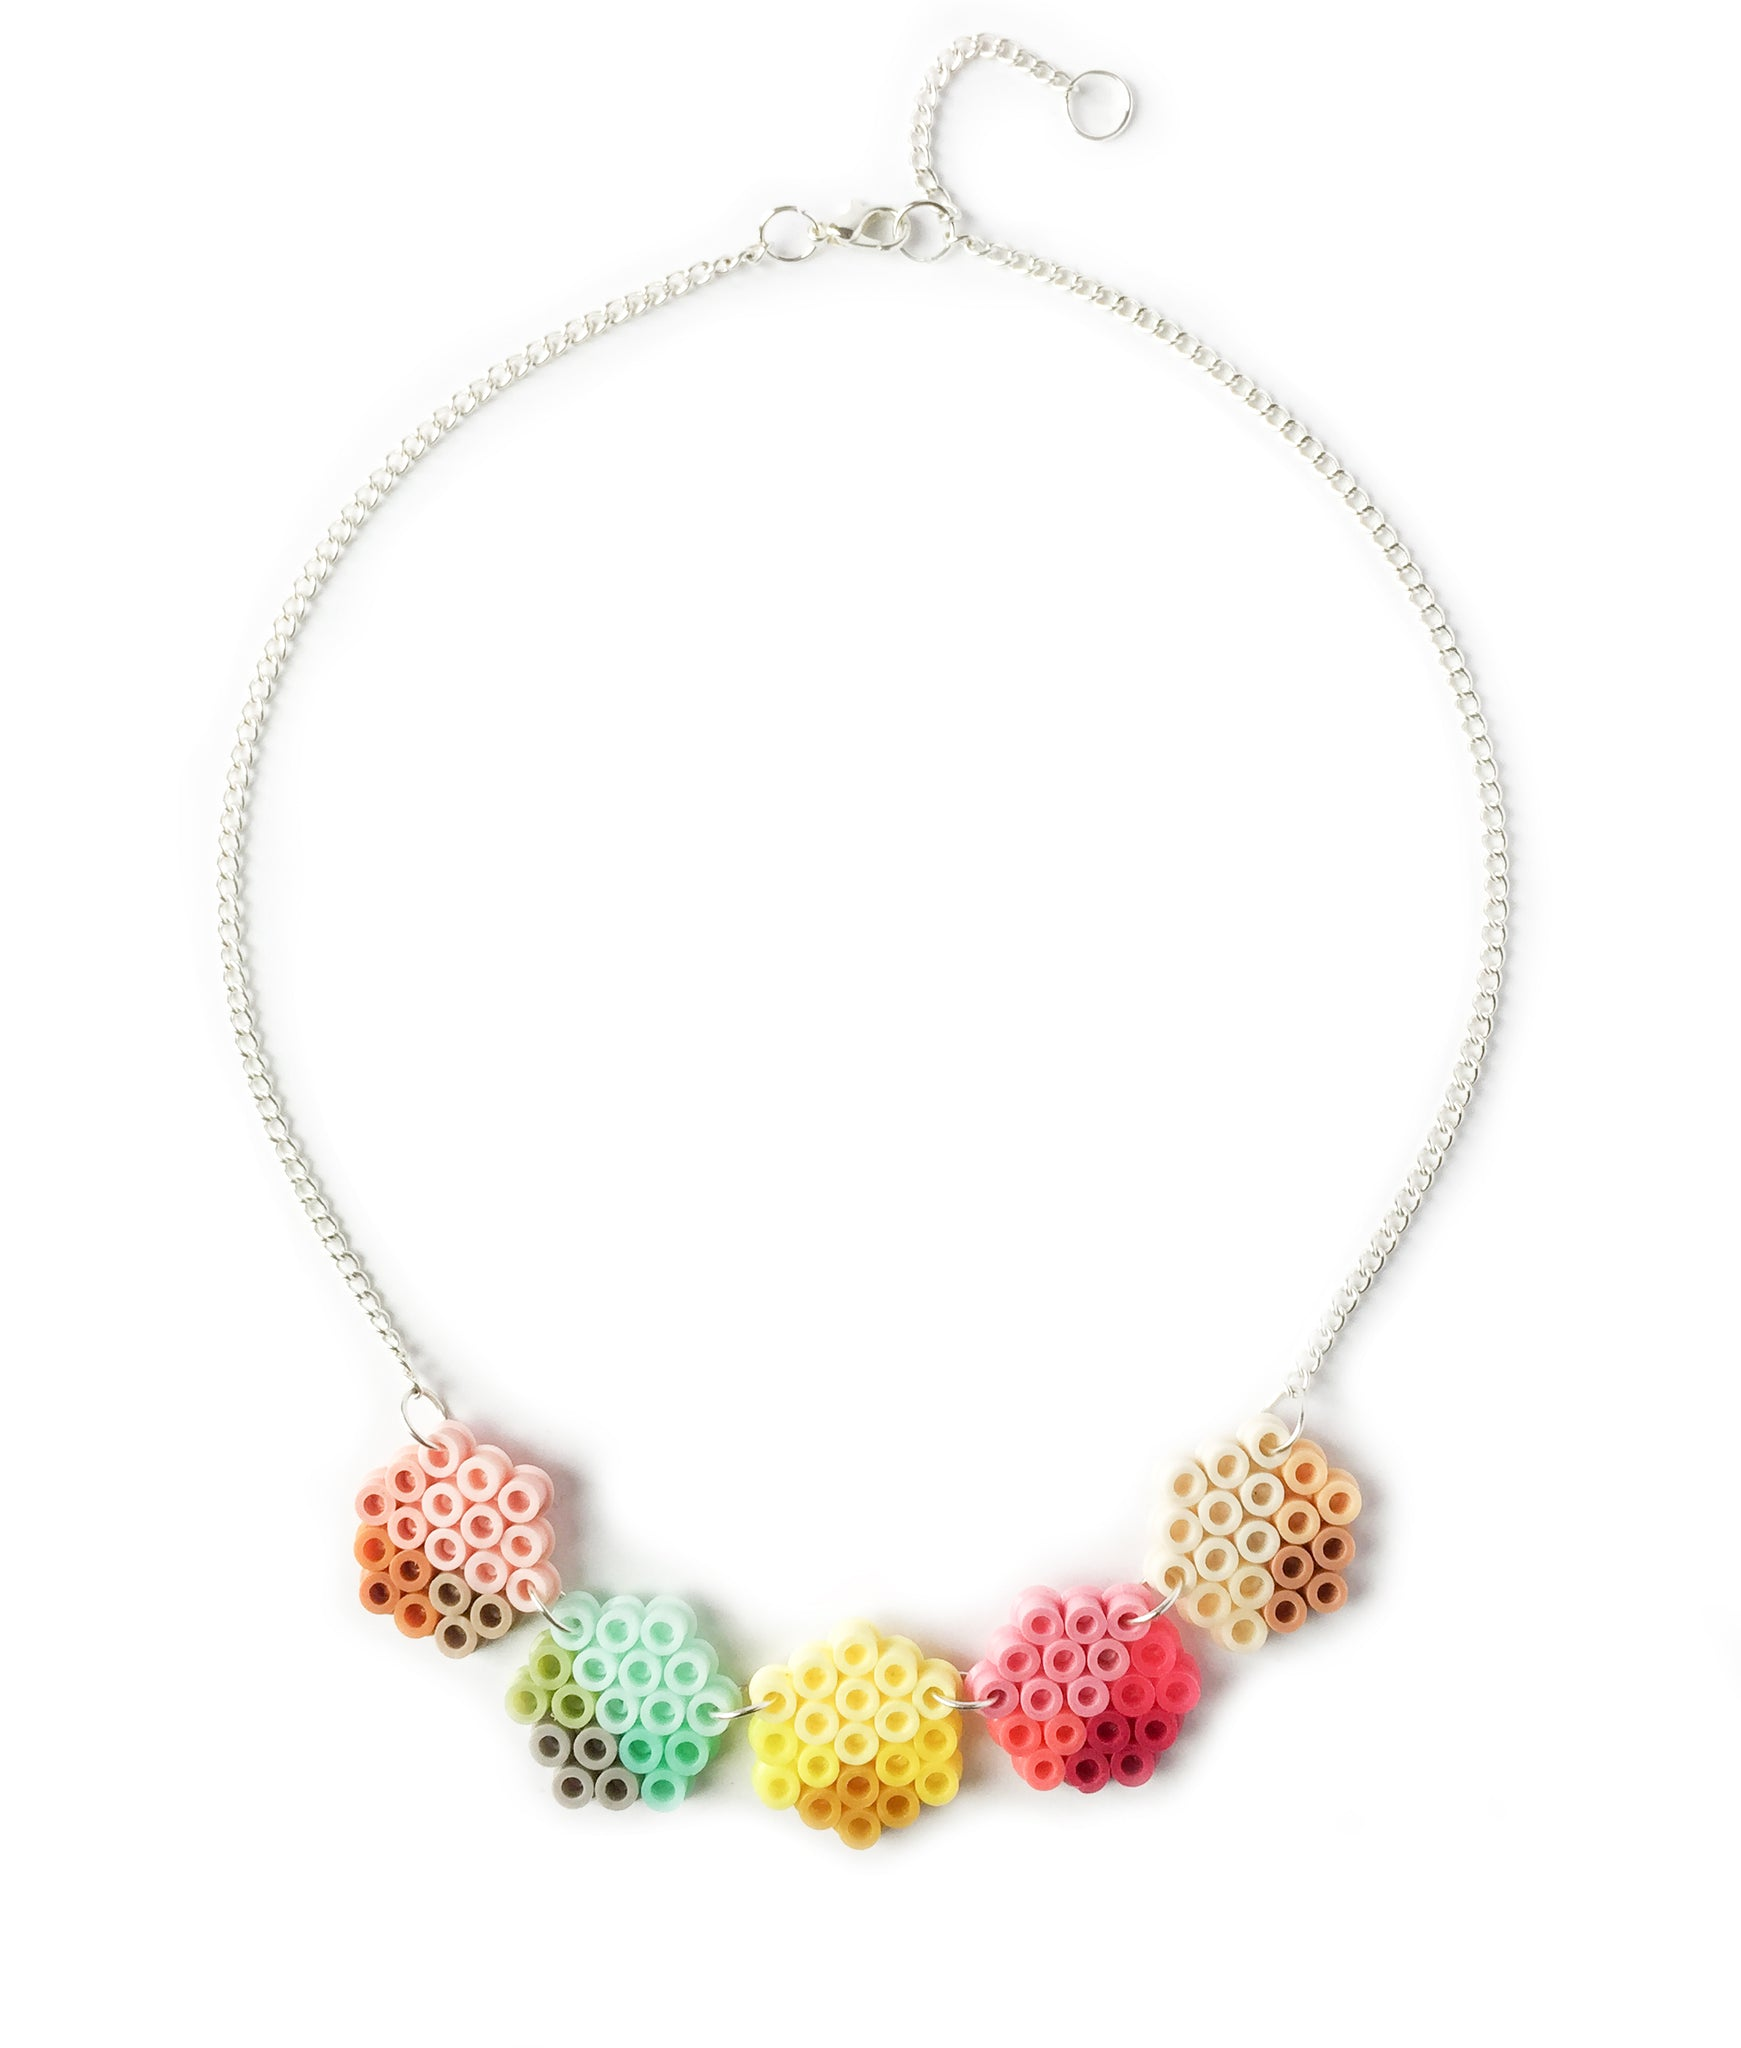 Small Geometric Beads Necklace - in pink, lemon and mint.